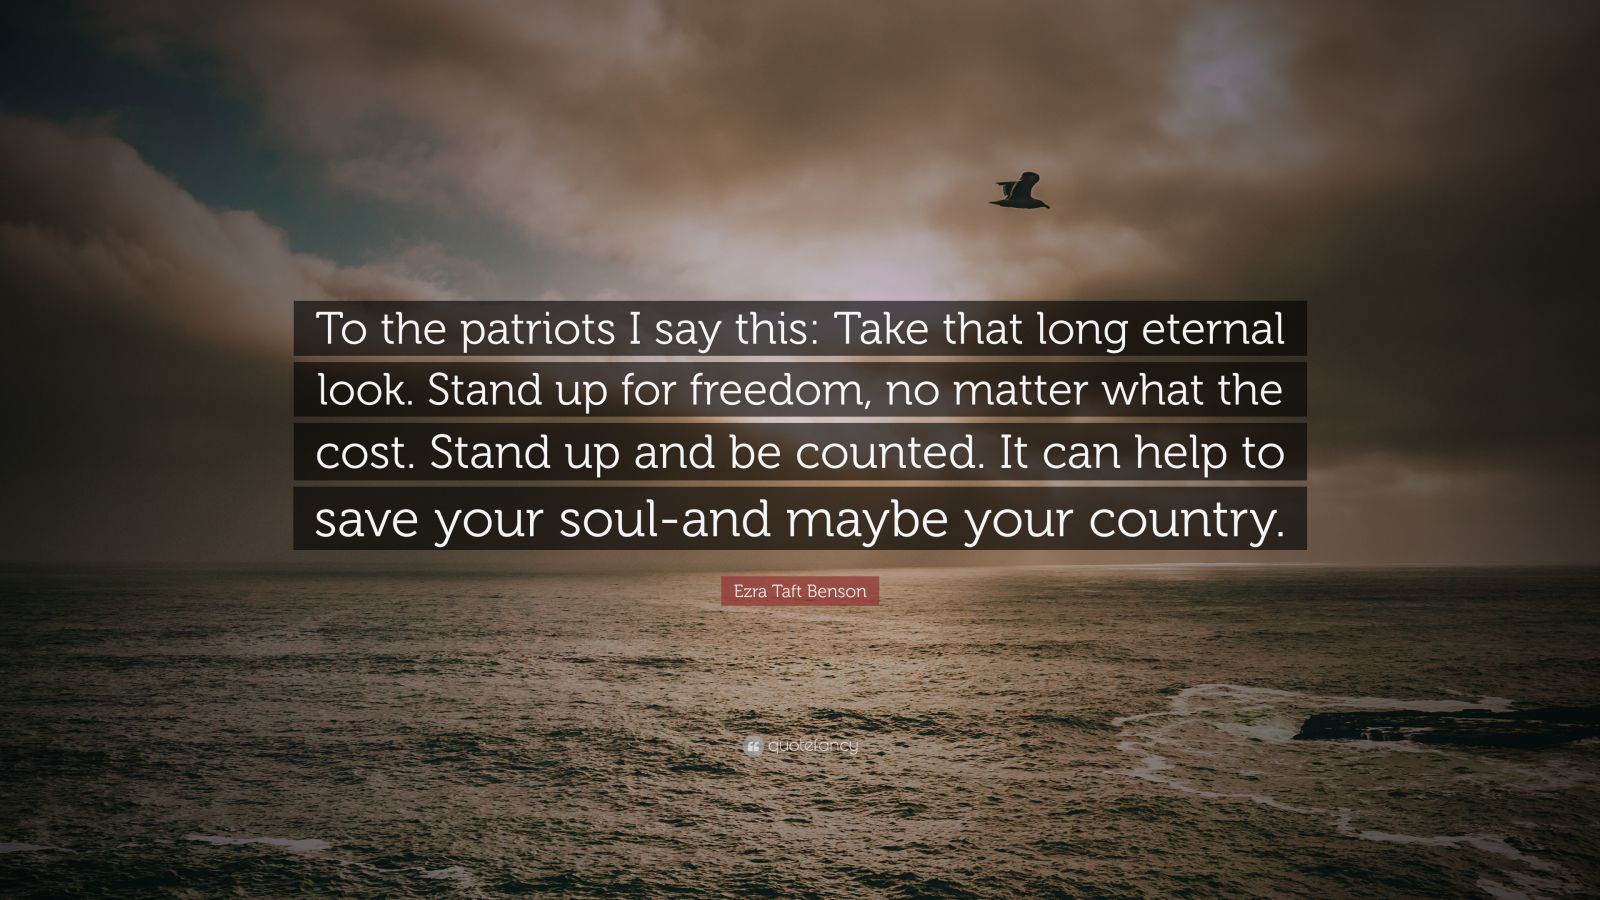 "Ezra Taft Benson Quote: ""To the patriots I say this: Take that long eternal look. Stand up for freedom, no matter what the cost. Stand up and be counted. It can help to save your soul-and maybe your country."""